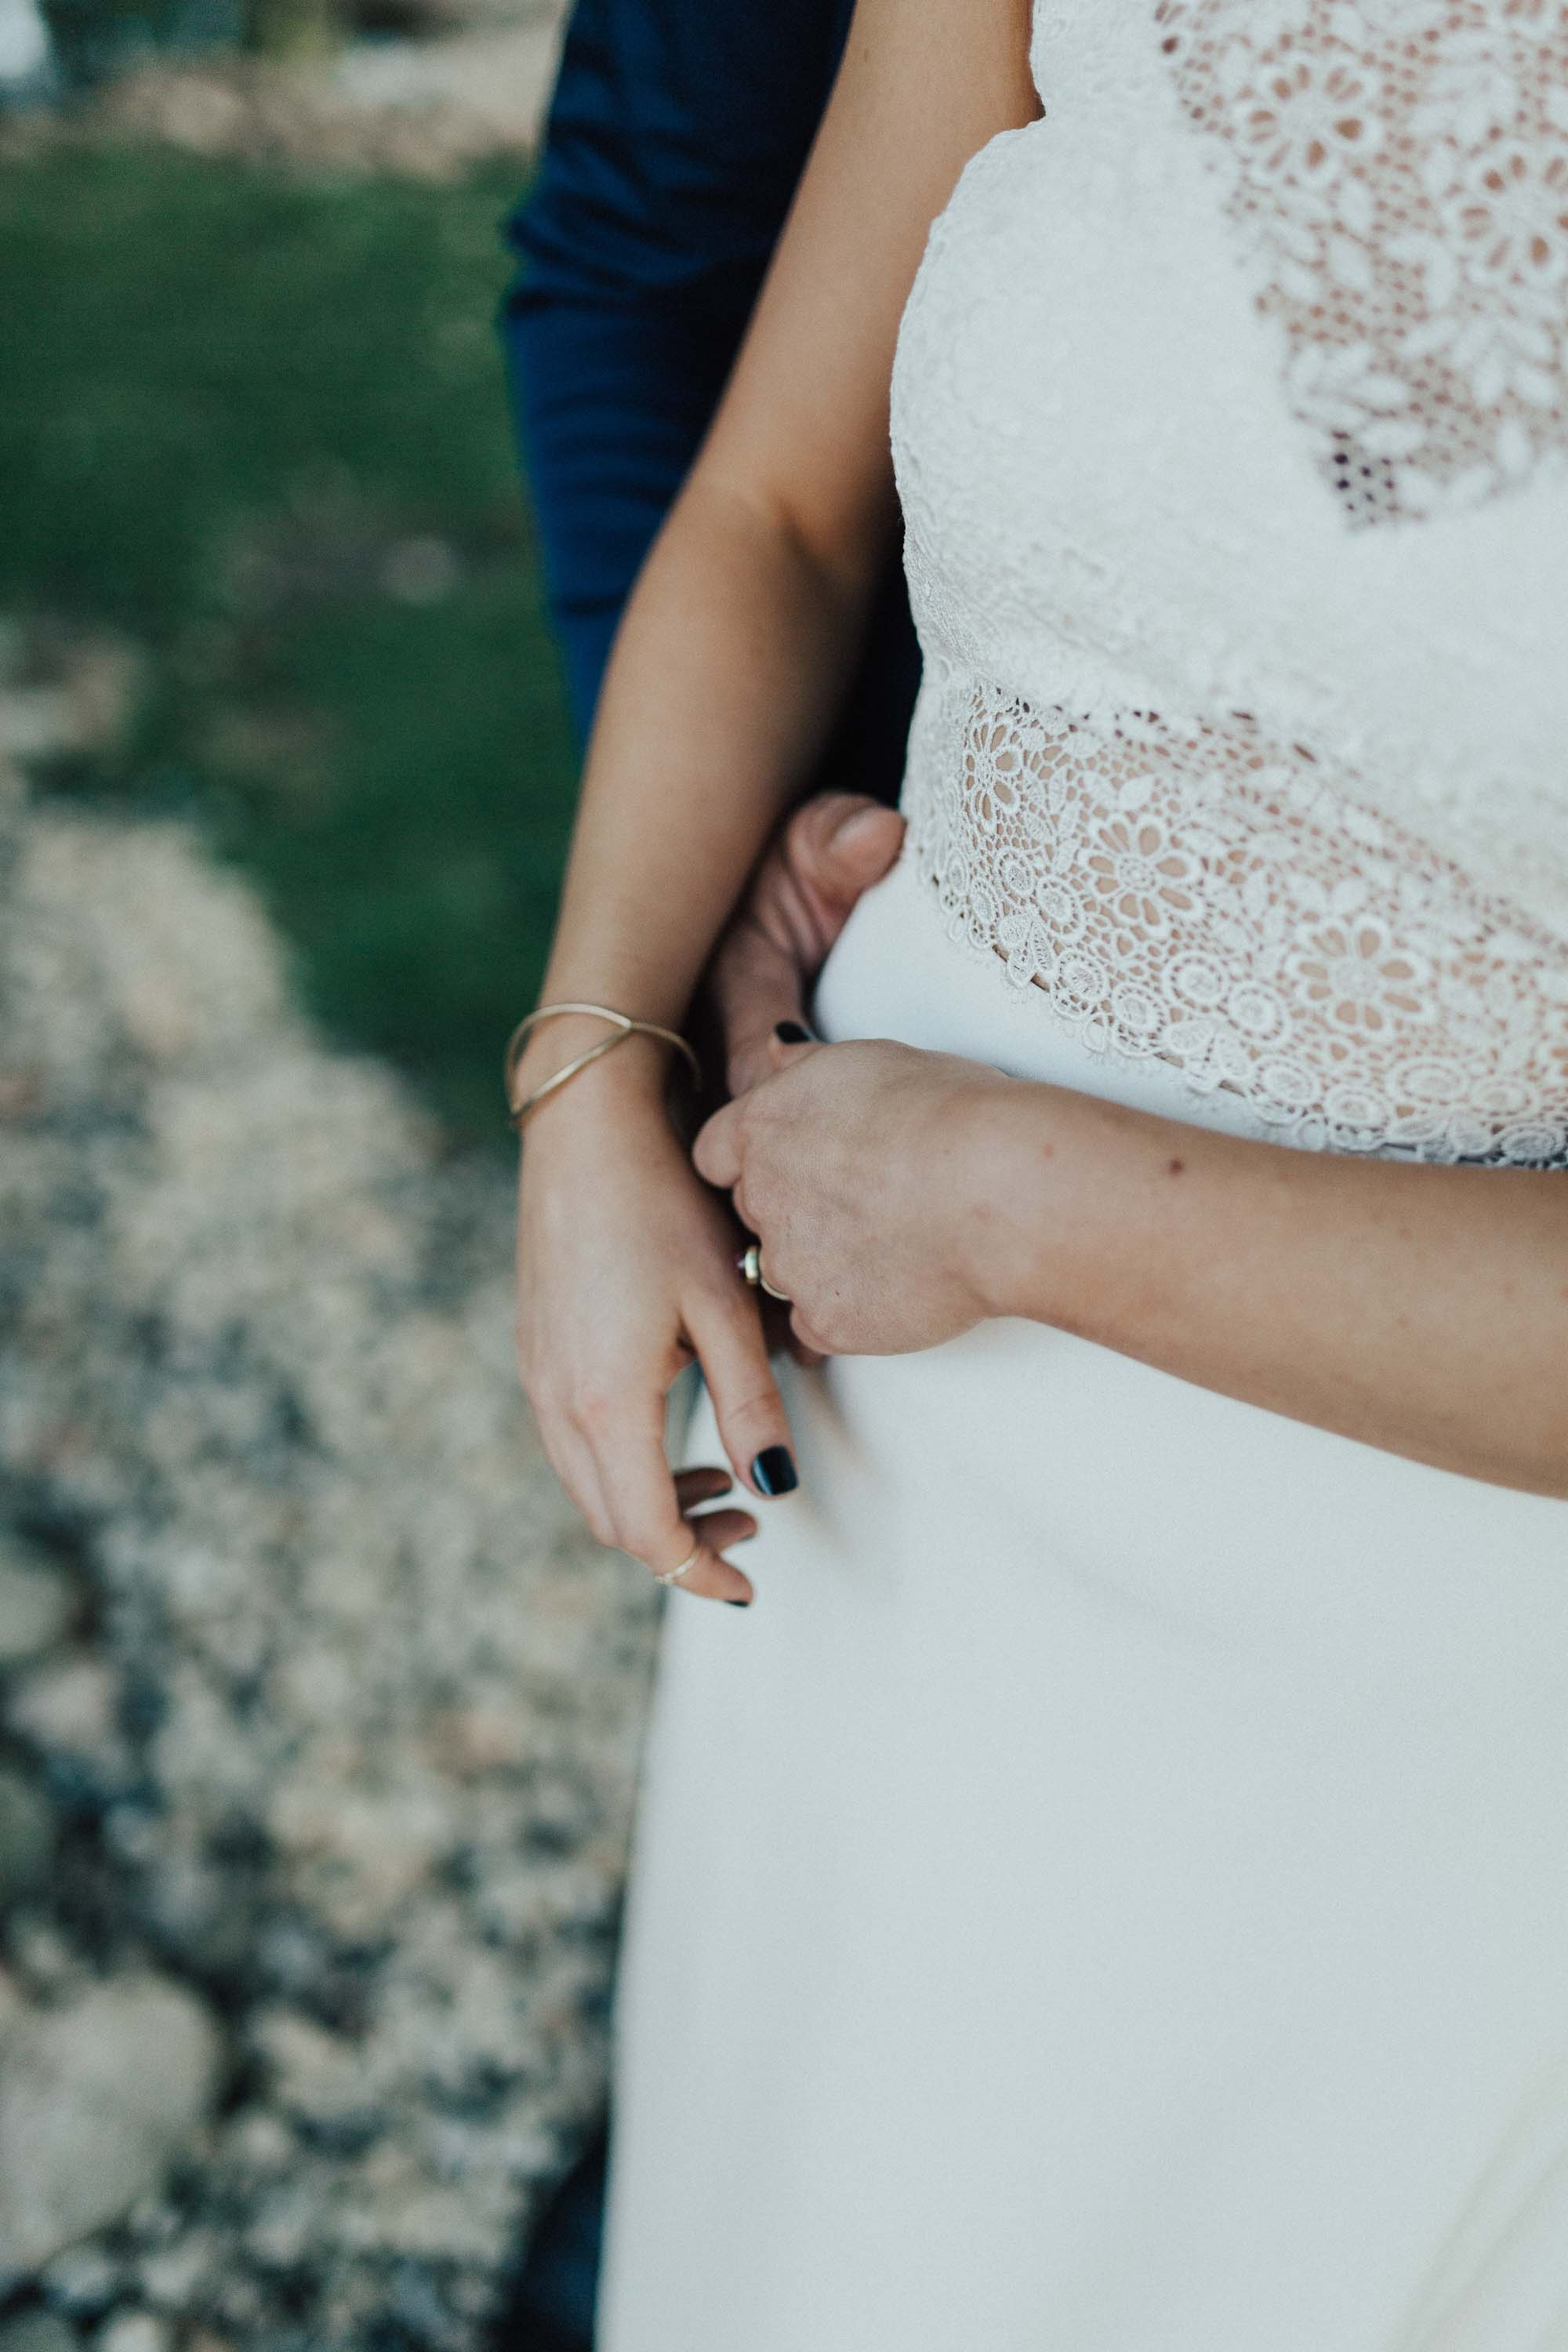 champaign_il_wedding_photography-0201.jpg